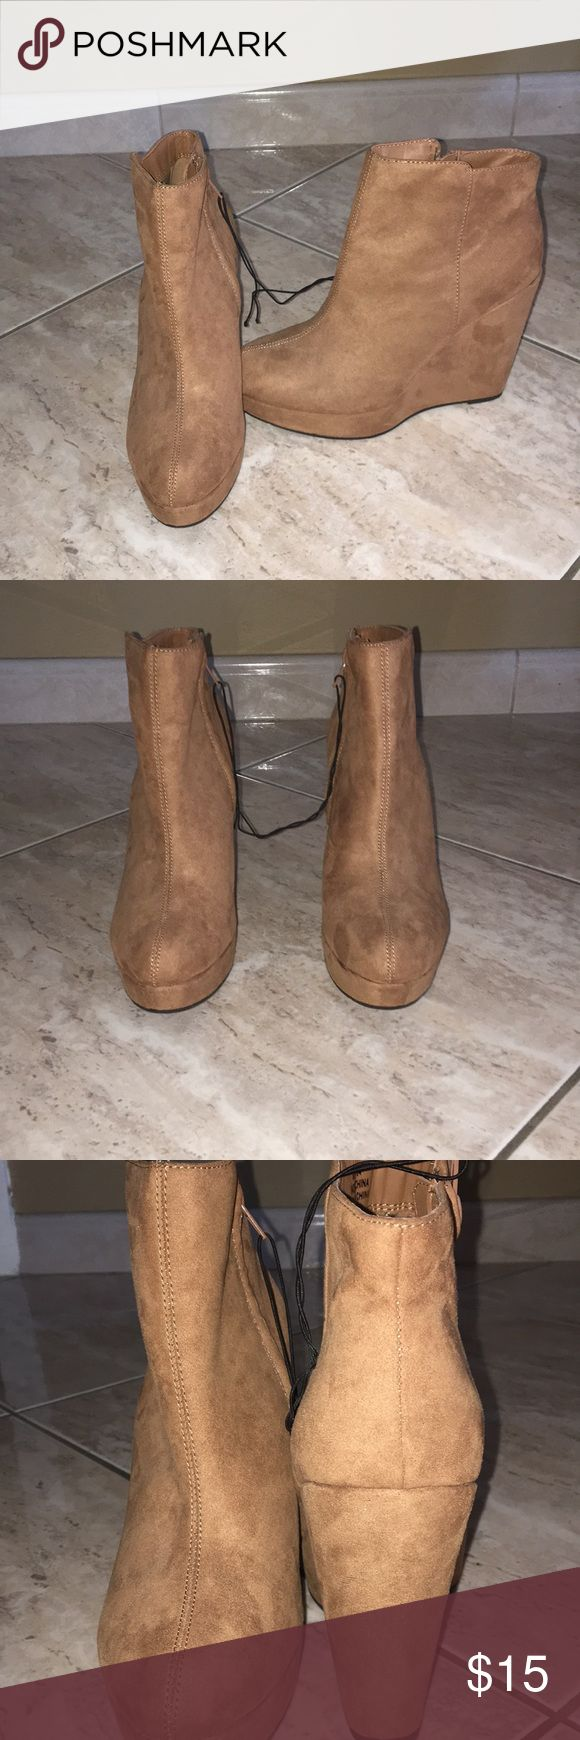 Brown wedge booties Sz. 8 New w/o tag brown wedge forever 21 booties Got them as a Christmas gift but they are too small on me  Size 8/38 EU Forever 21 Shoes Ankle Boots & Booties